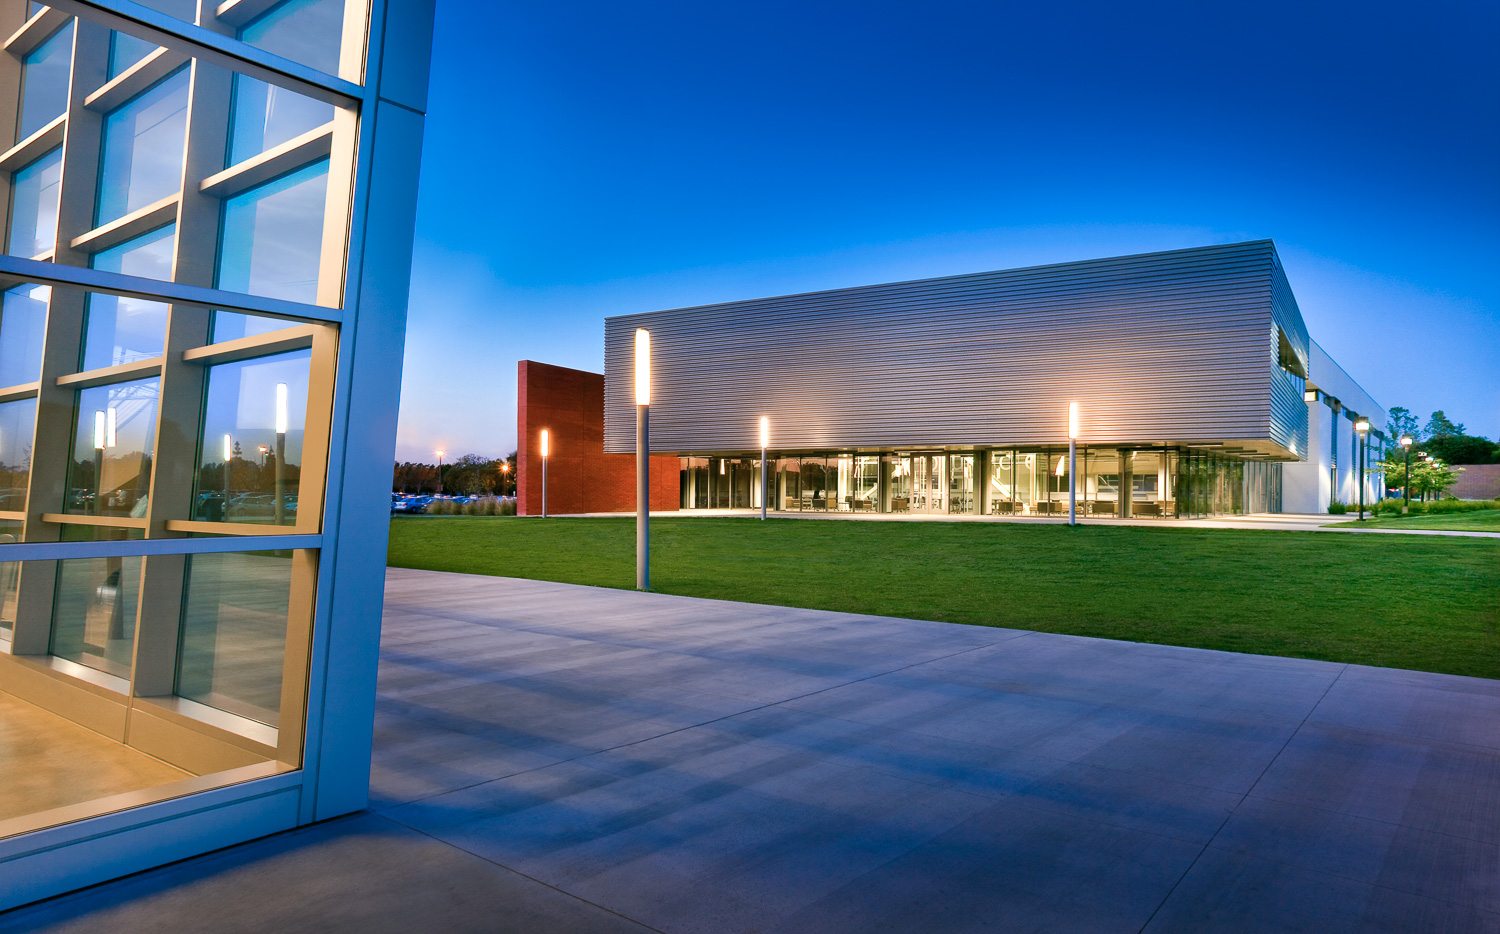 001 Irvine Valley College.jpg